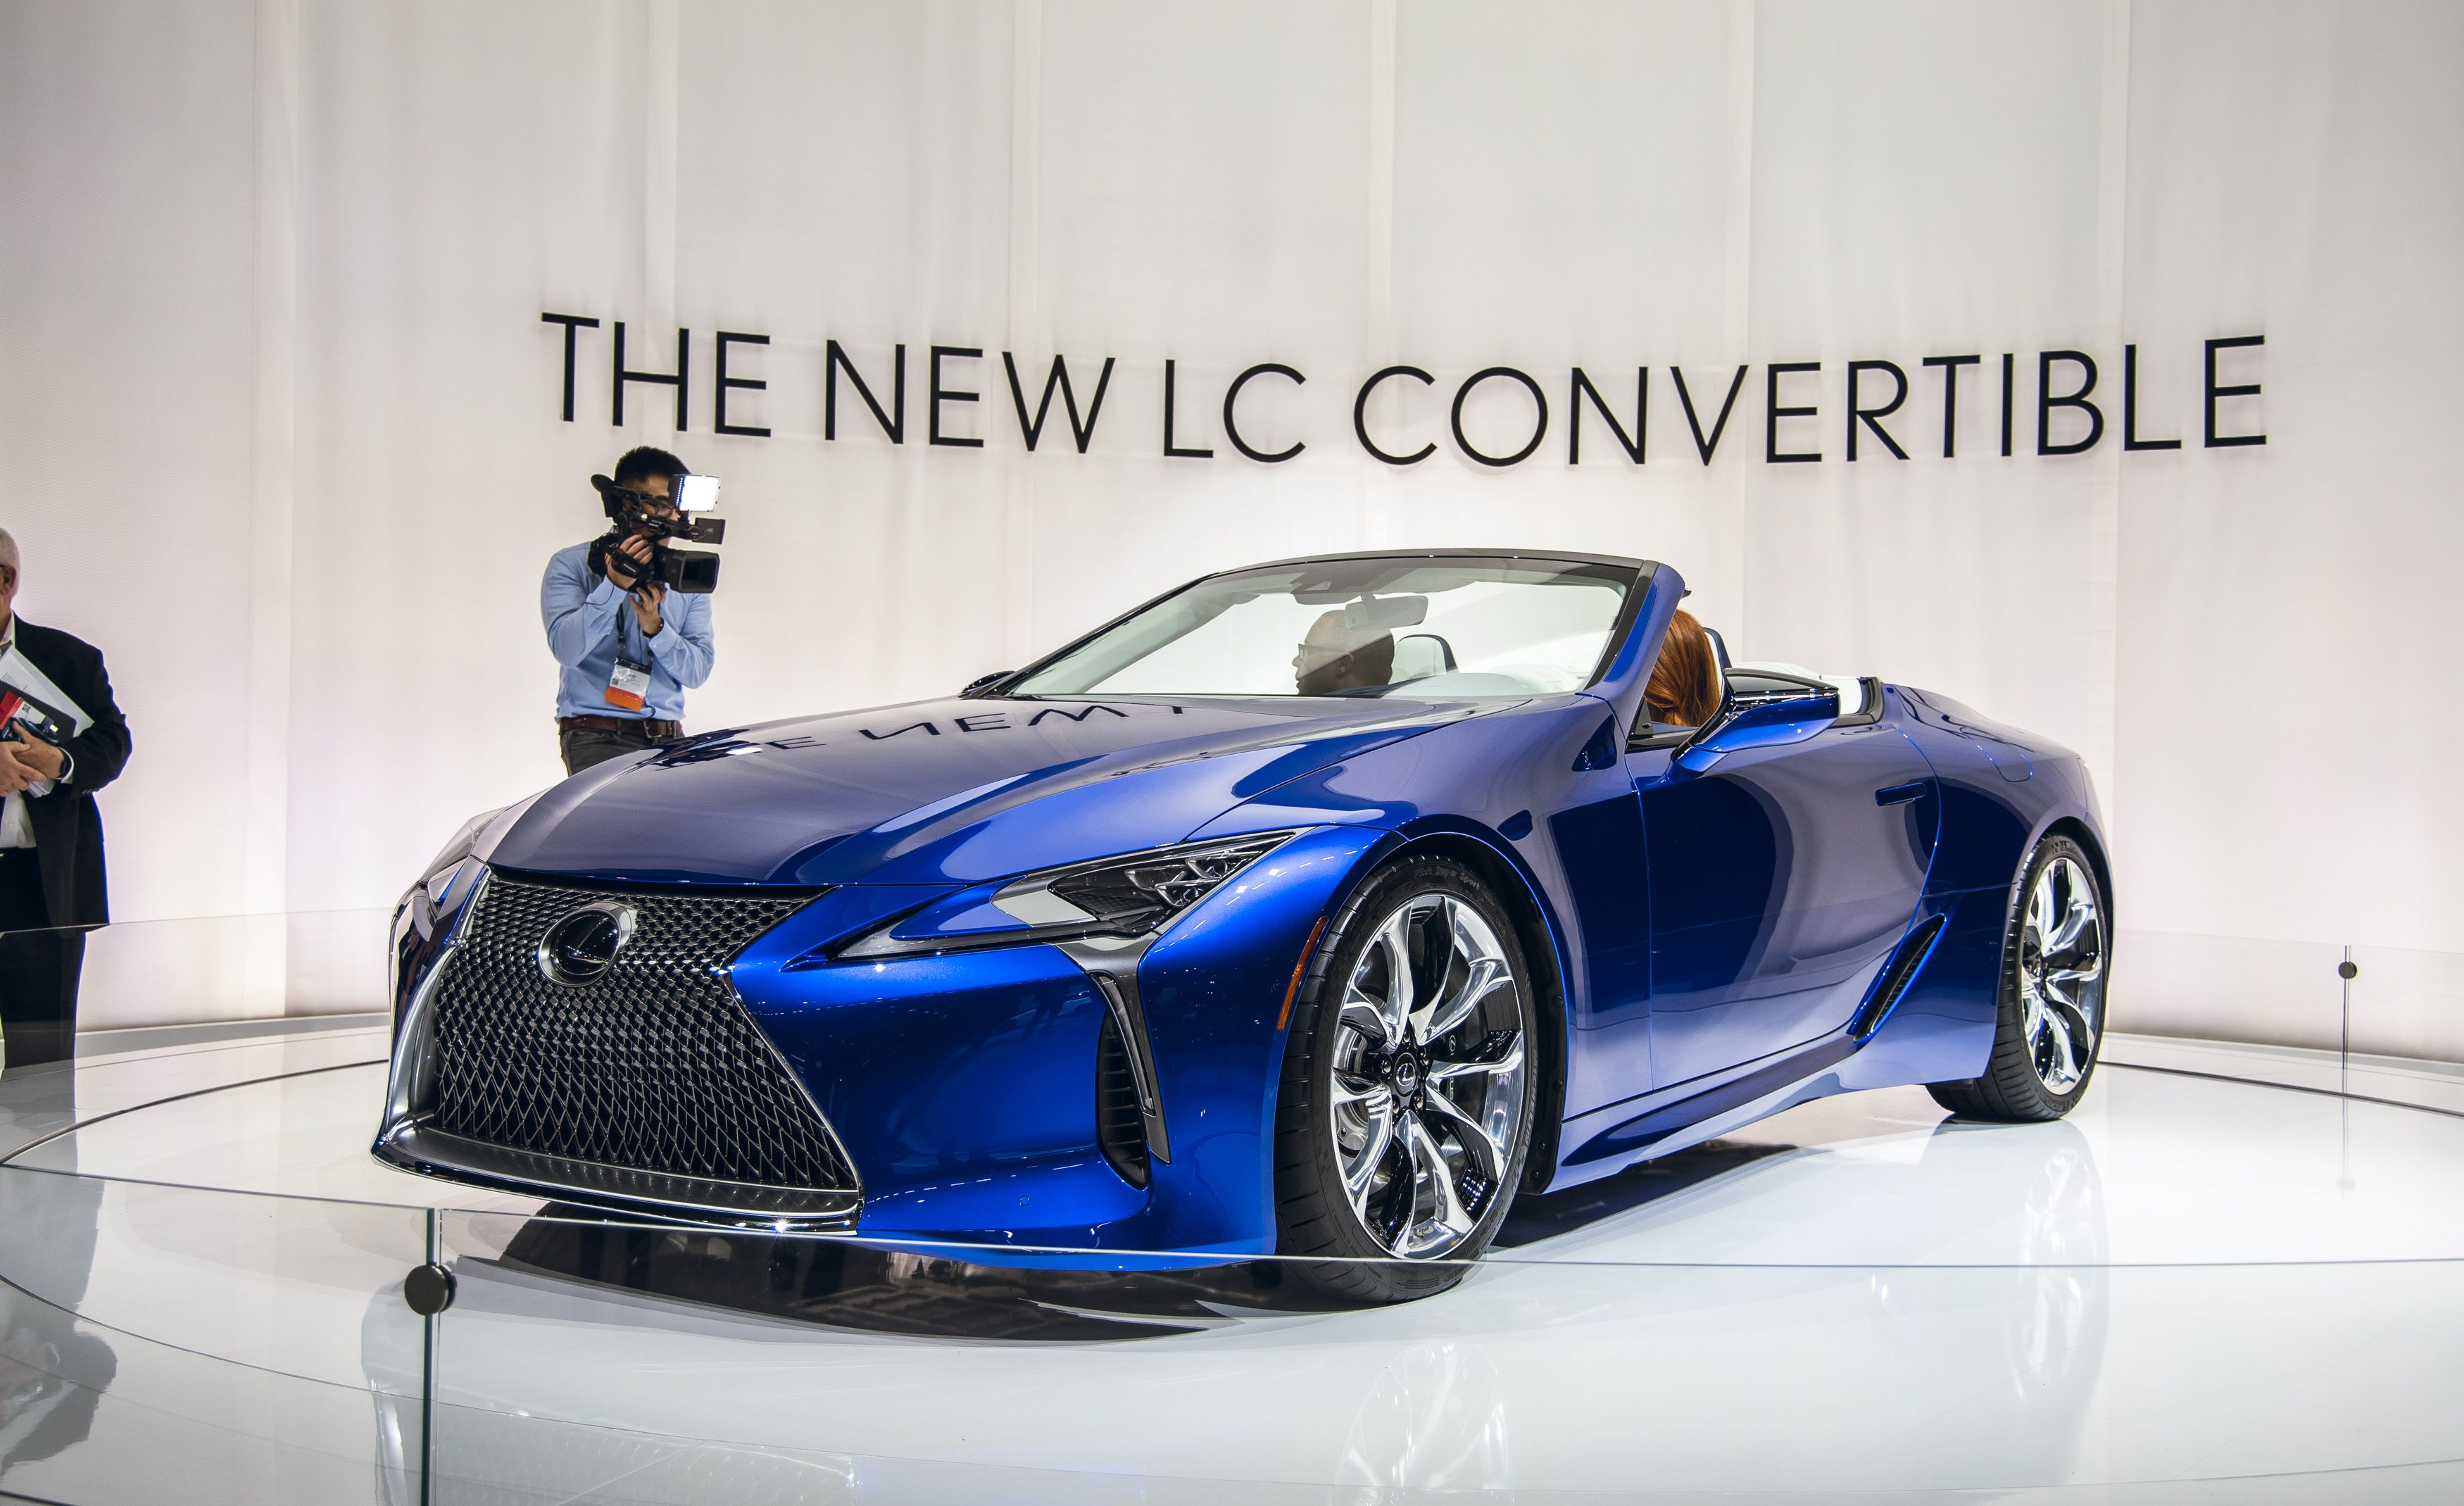 2021 Lexus Lc500 Convertible Is Finally Here And It S Gorgeous